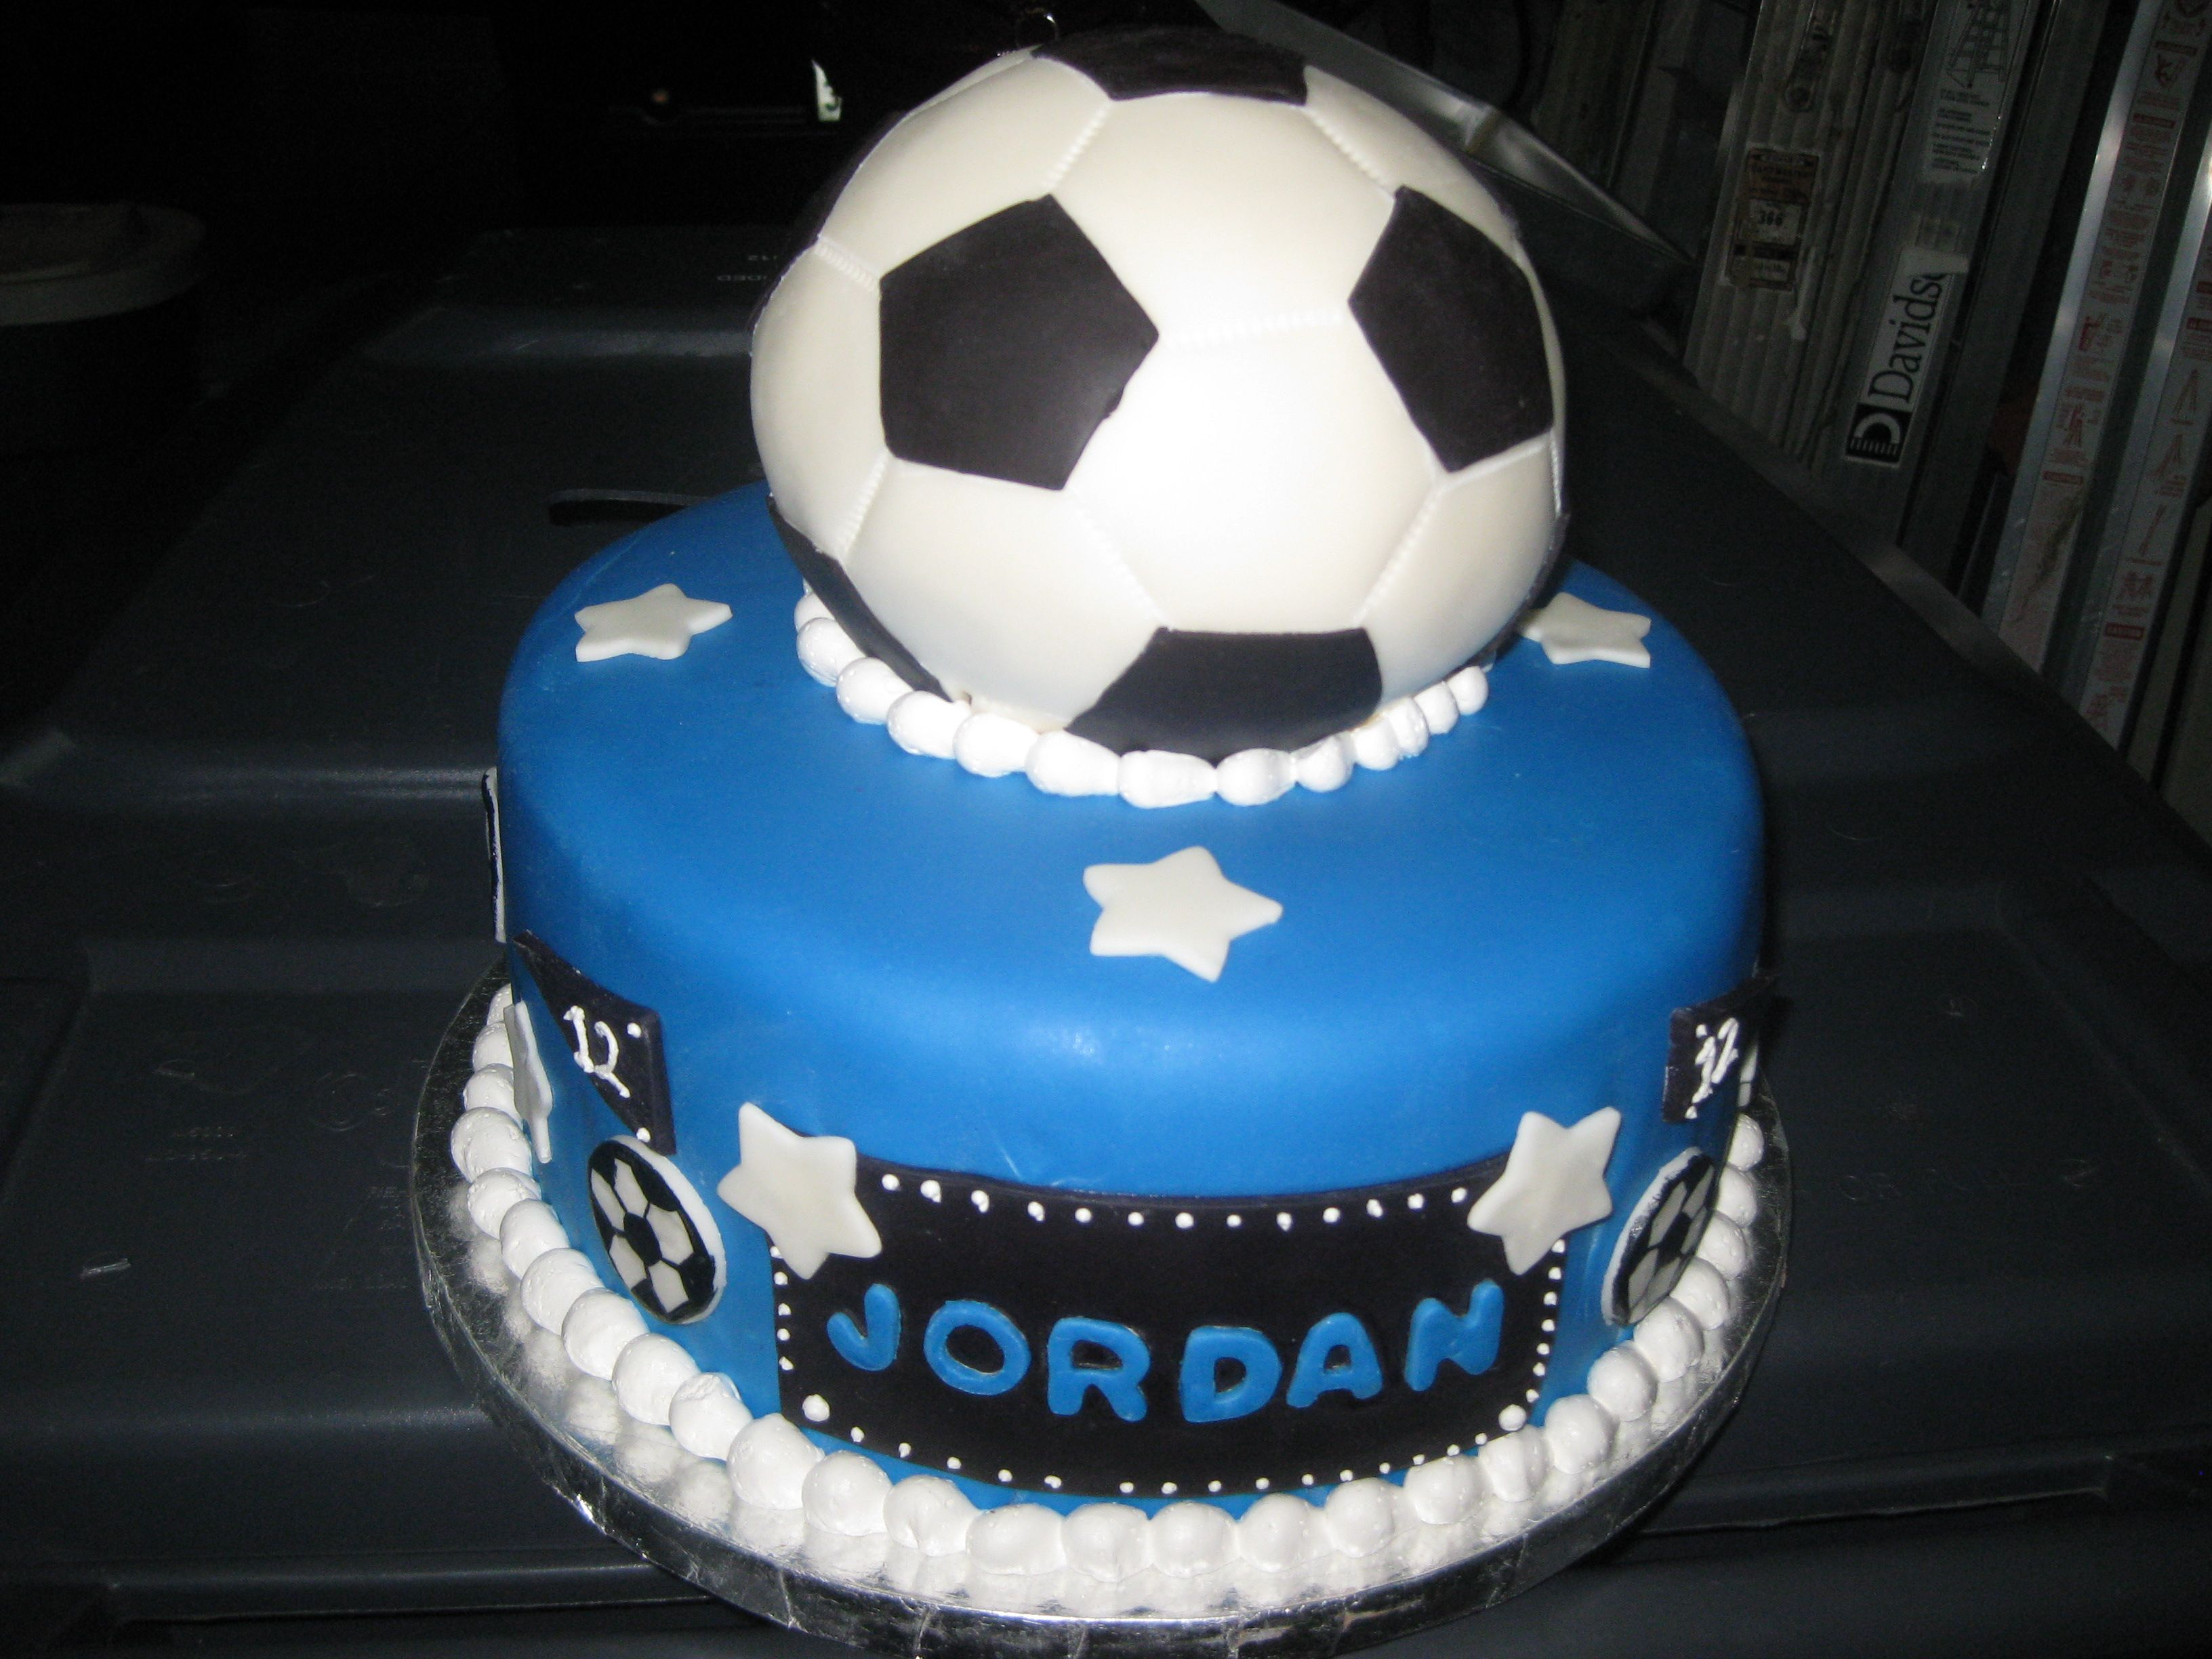 Soccer Design Cake Soccer Cake La Galaxy David Beckham Birthday